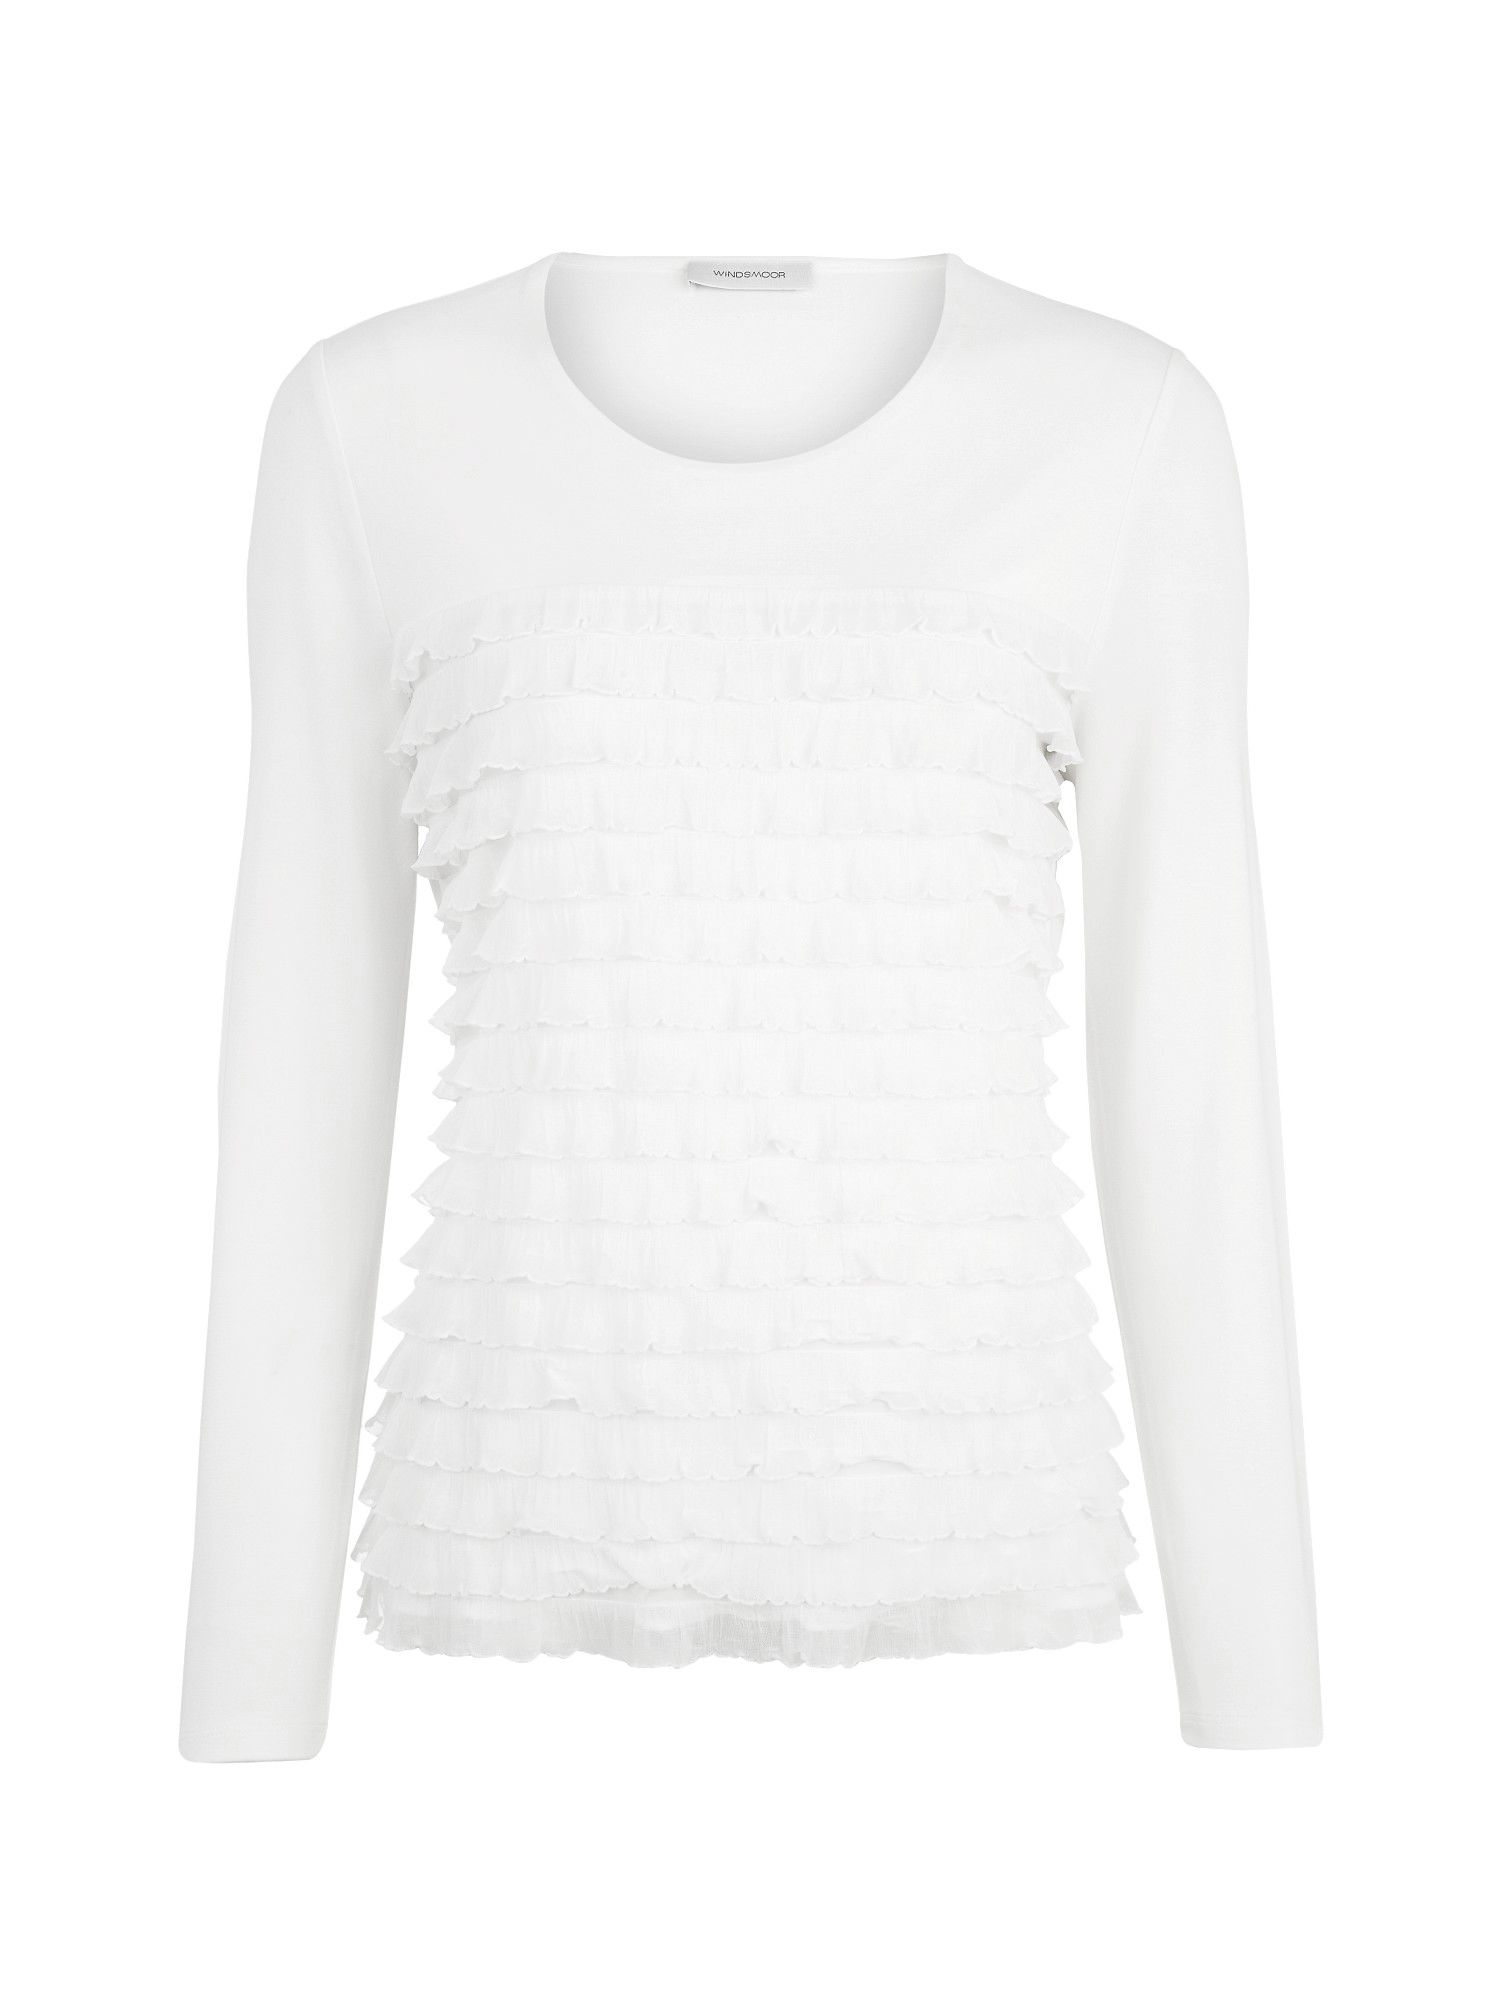 Ivory Layered Top